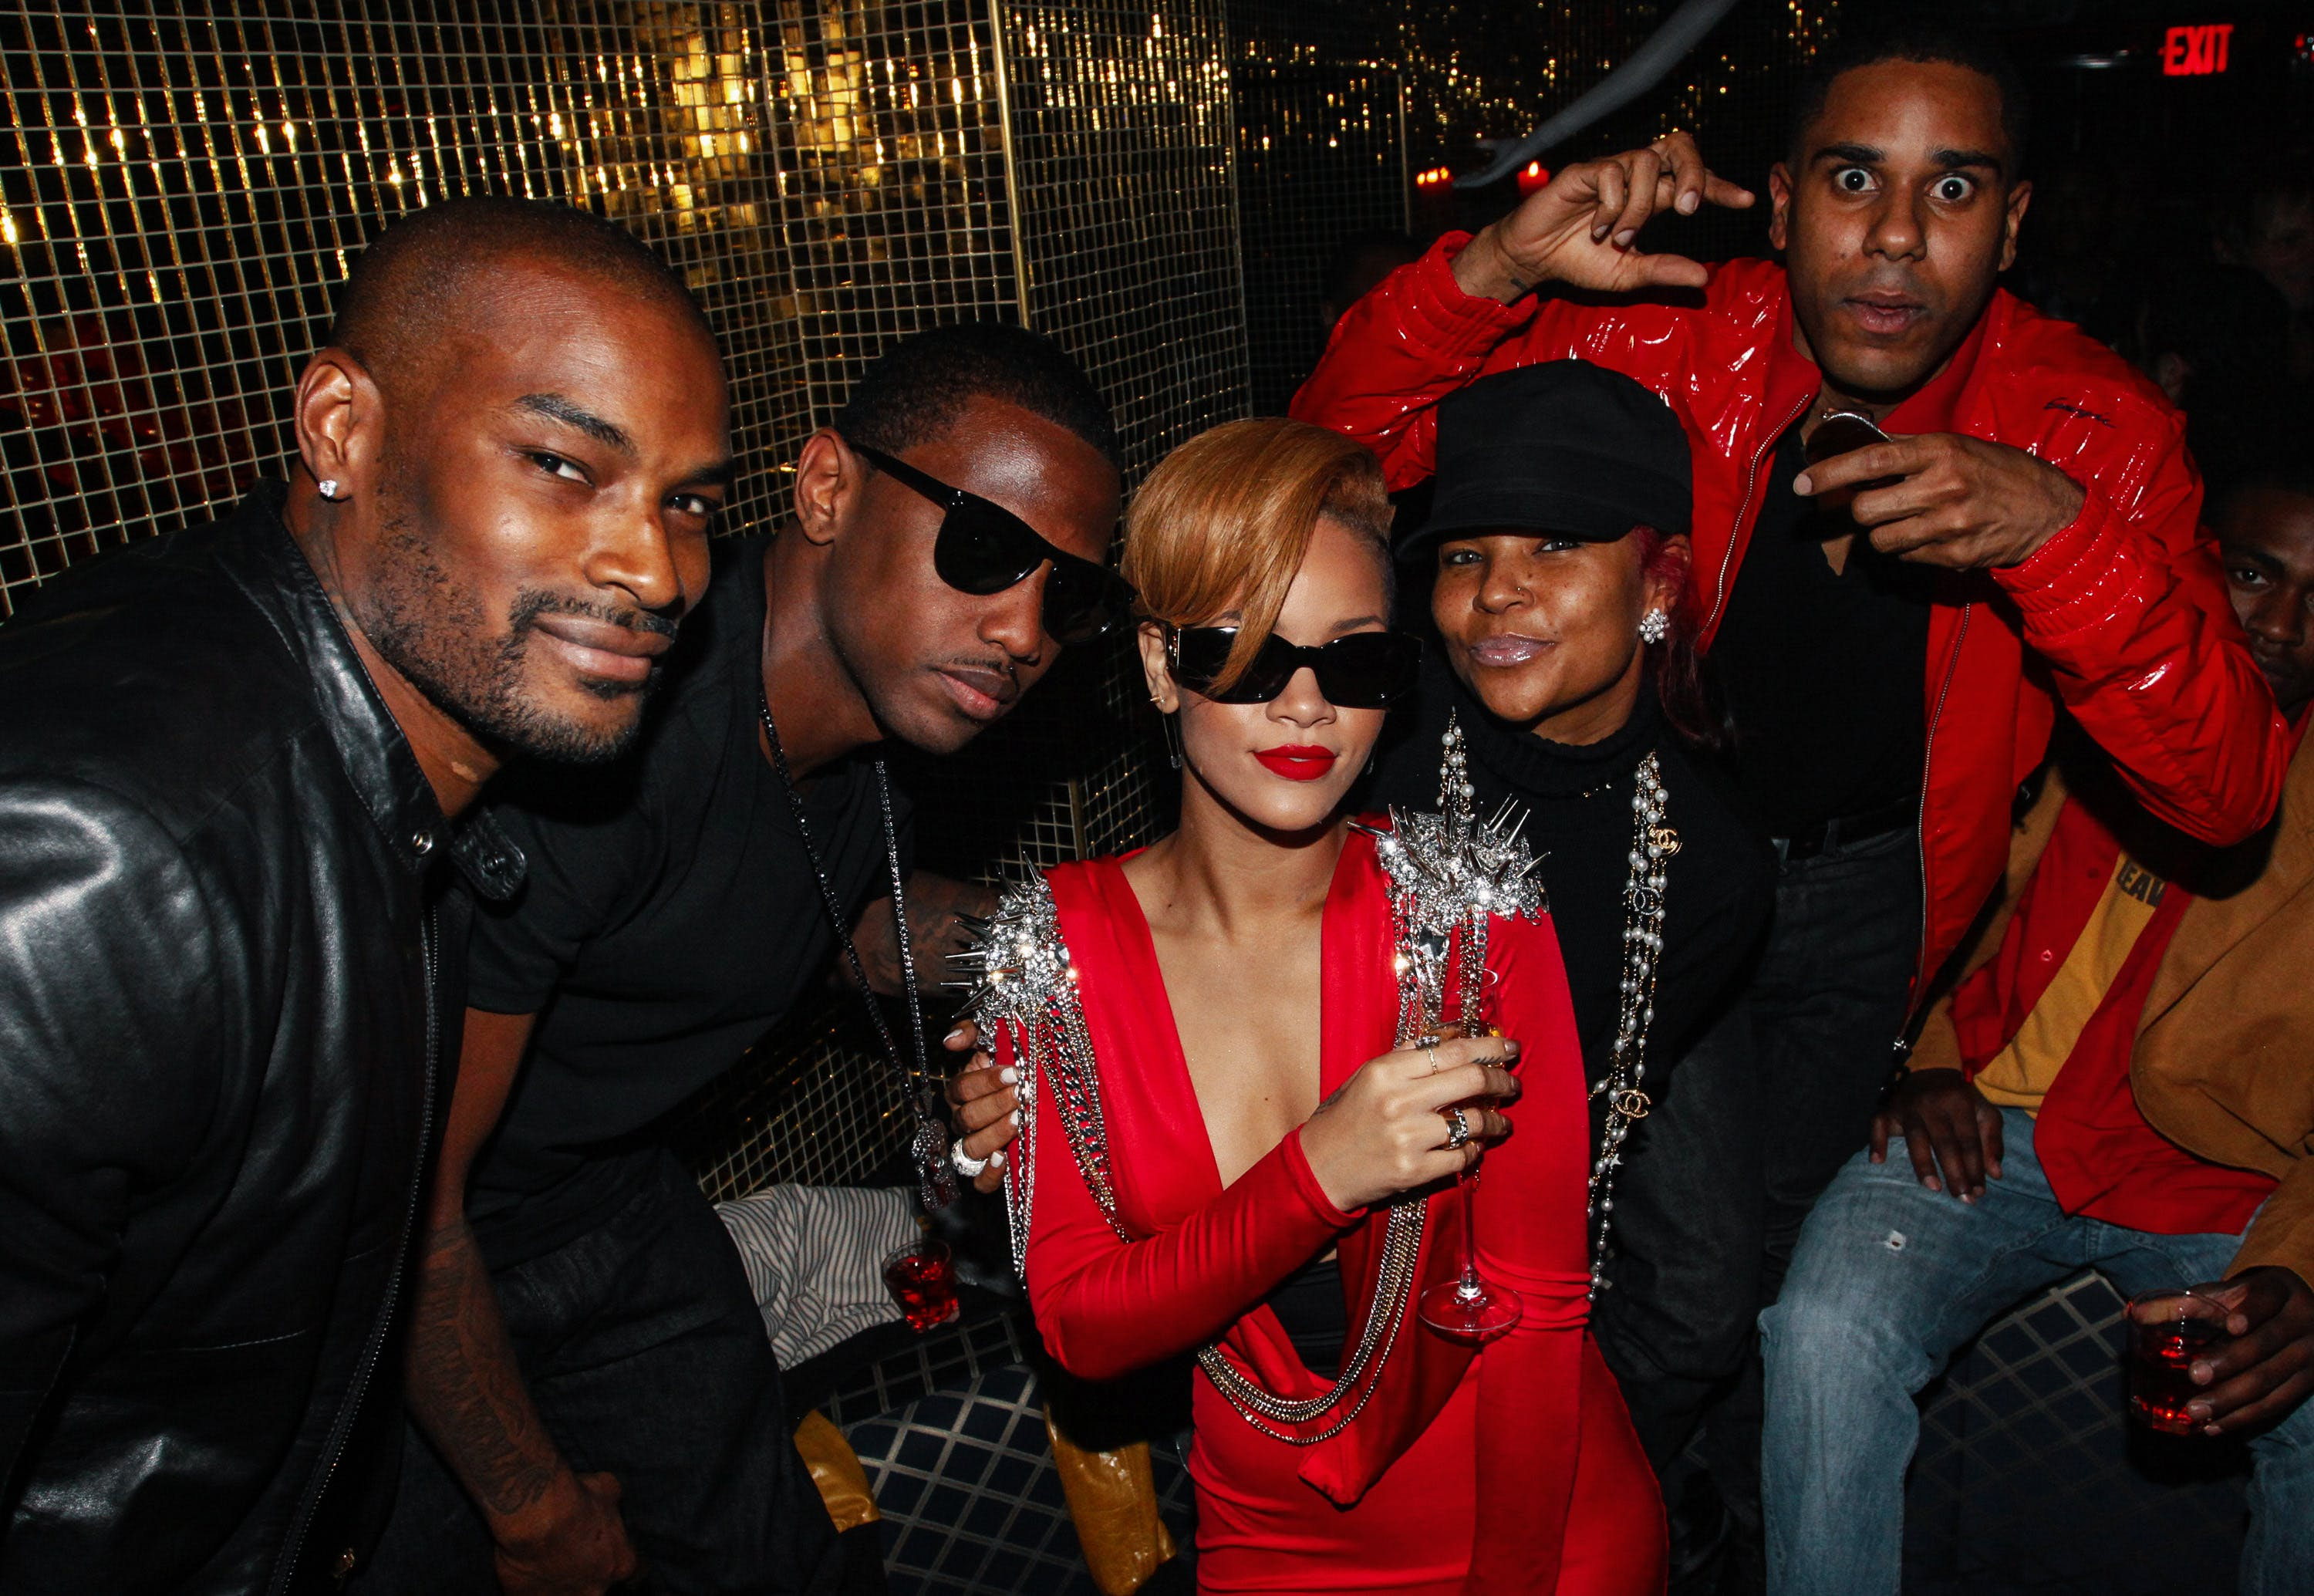 Charlemagne Tha God 3 1 Whats it Like Partying With Rihanna? Charlamange Tha God Explains in Video